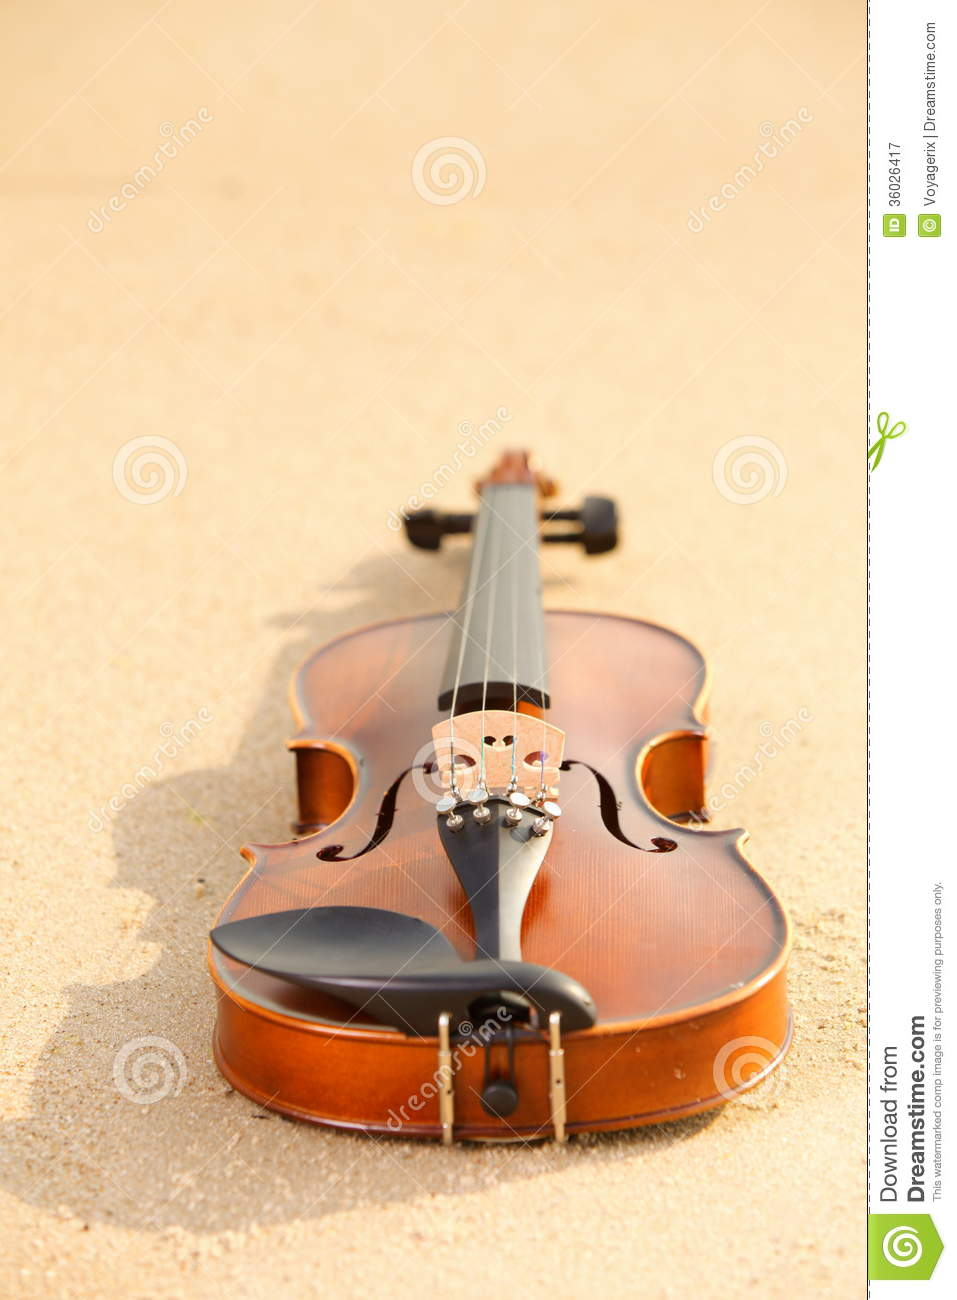 Violin On Sandy Beach. Music Concept Stock Image - Image of concert ...